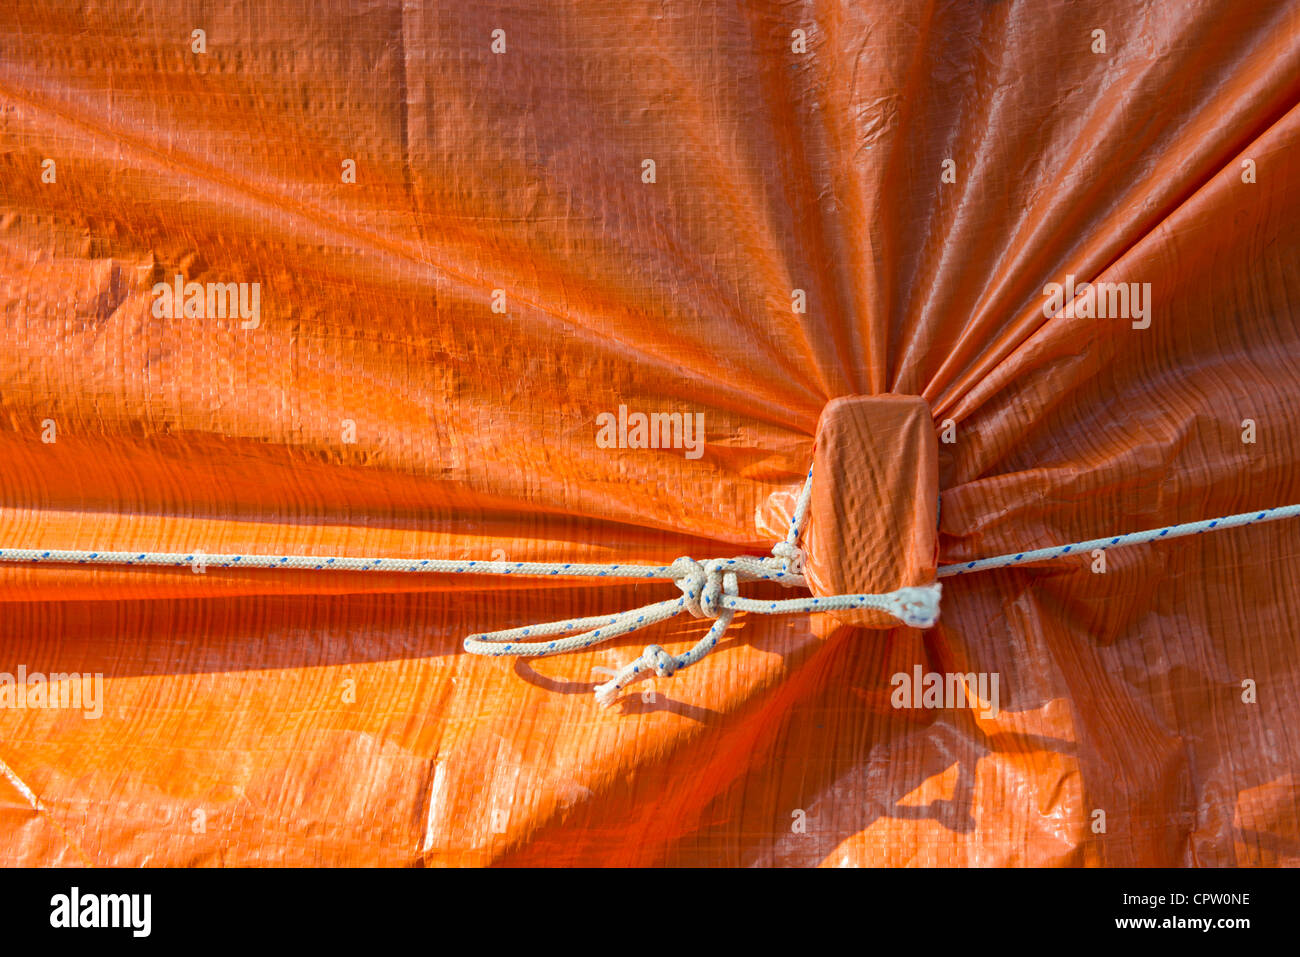 Knot, securing an orange cover sheet - Stock Image